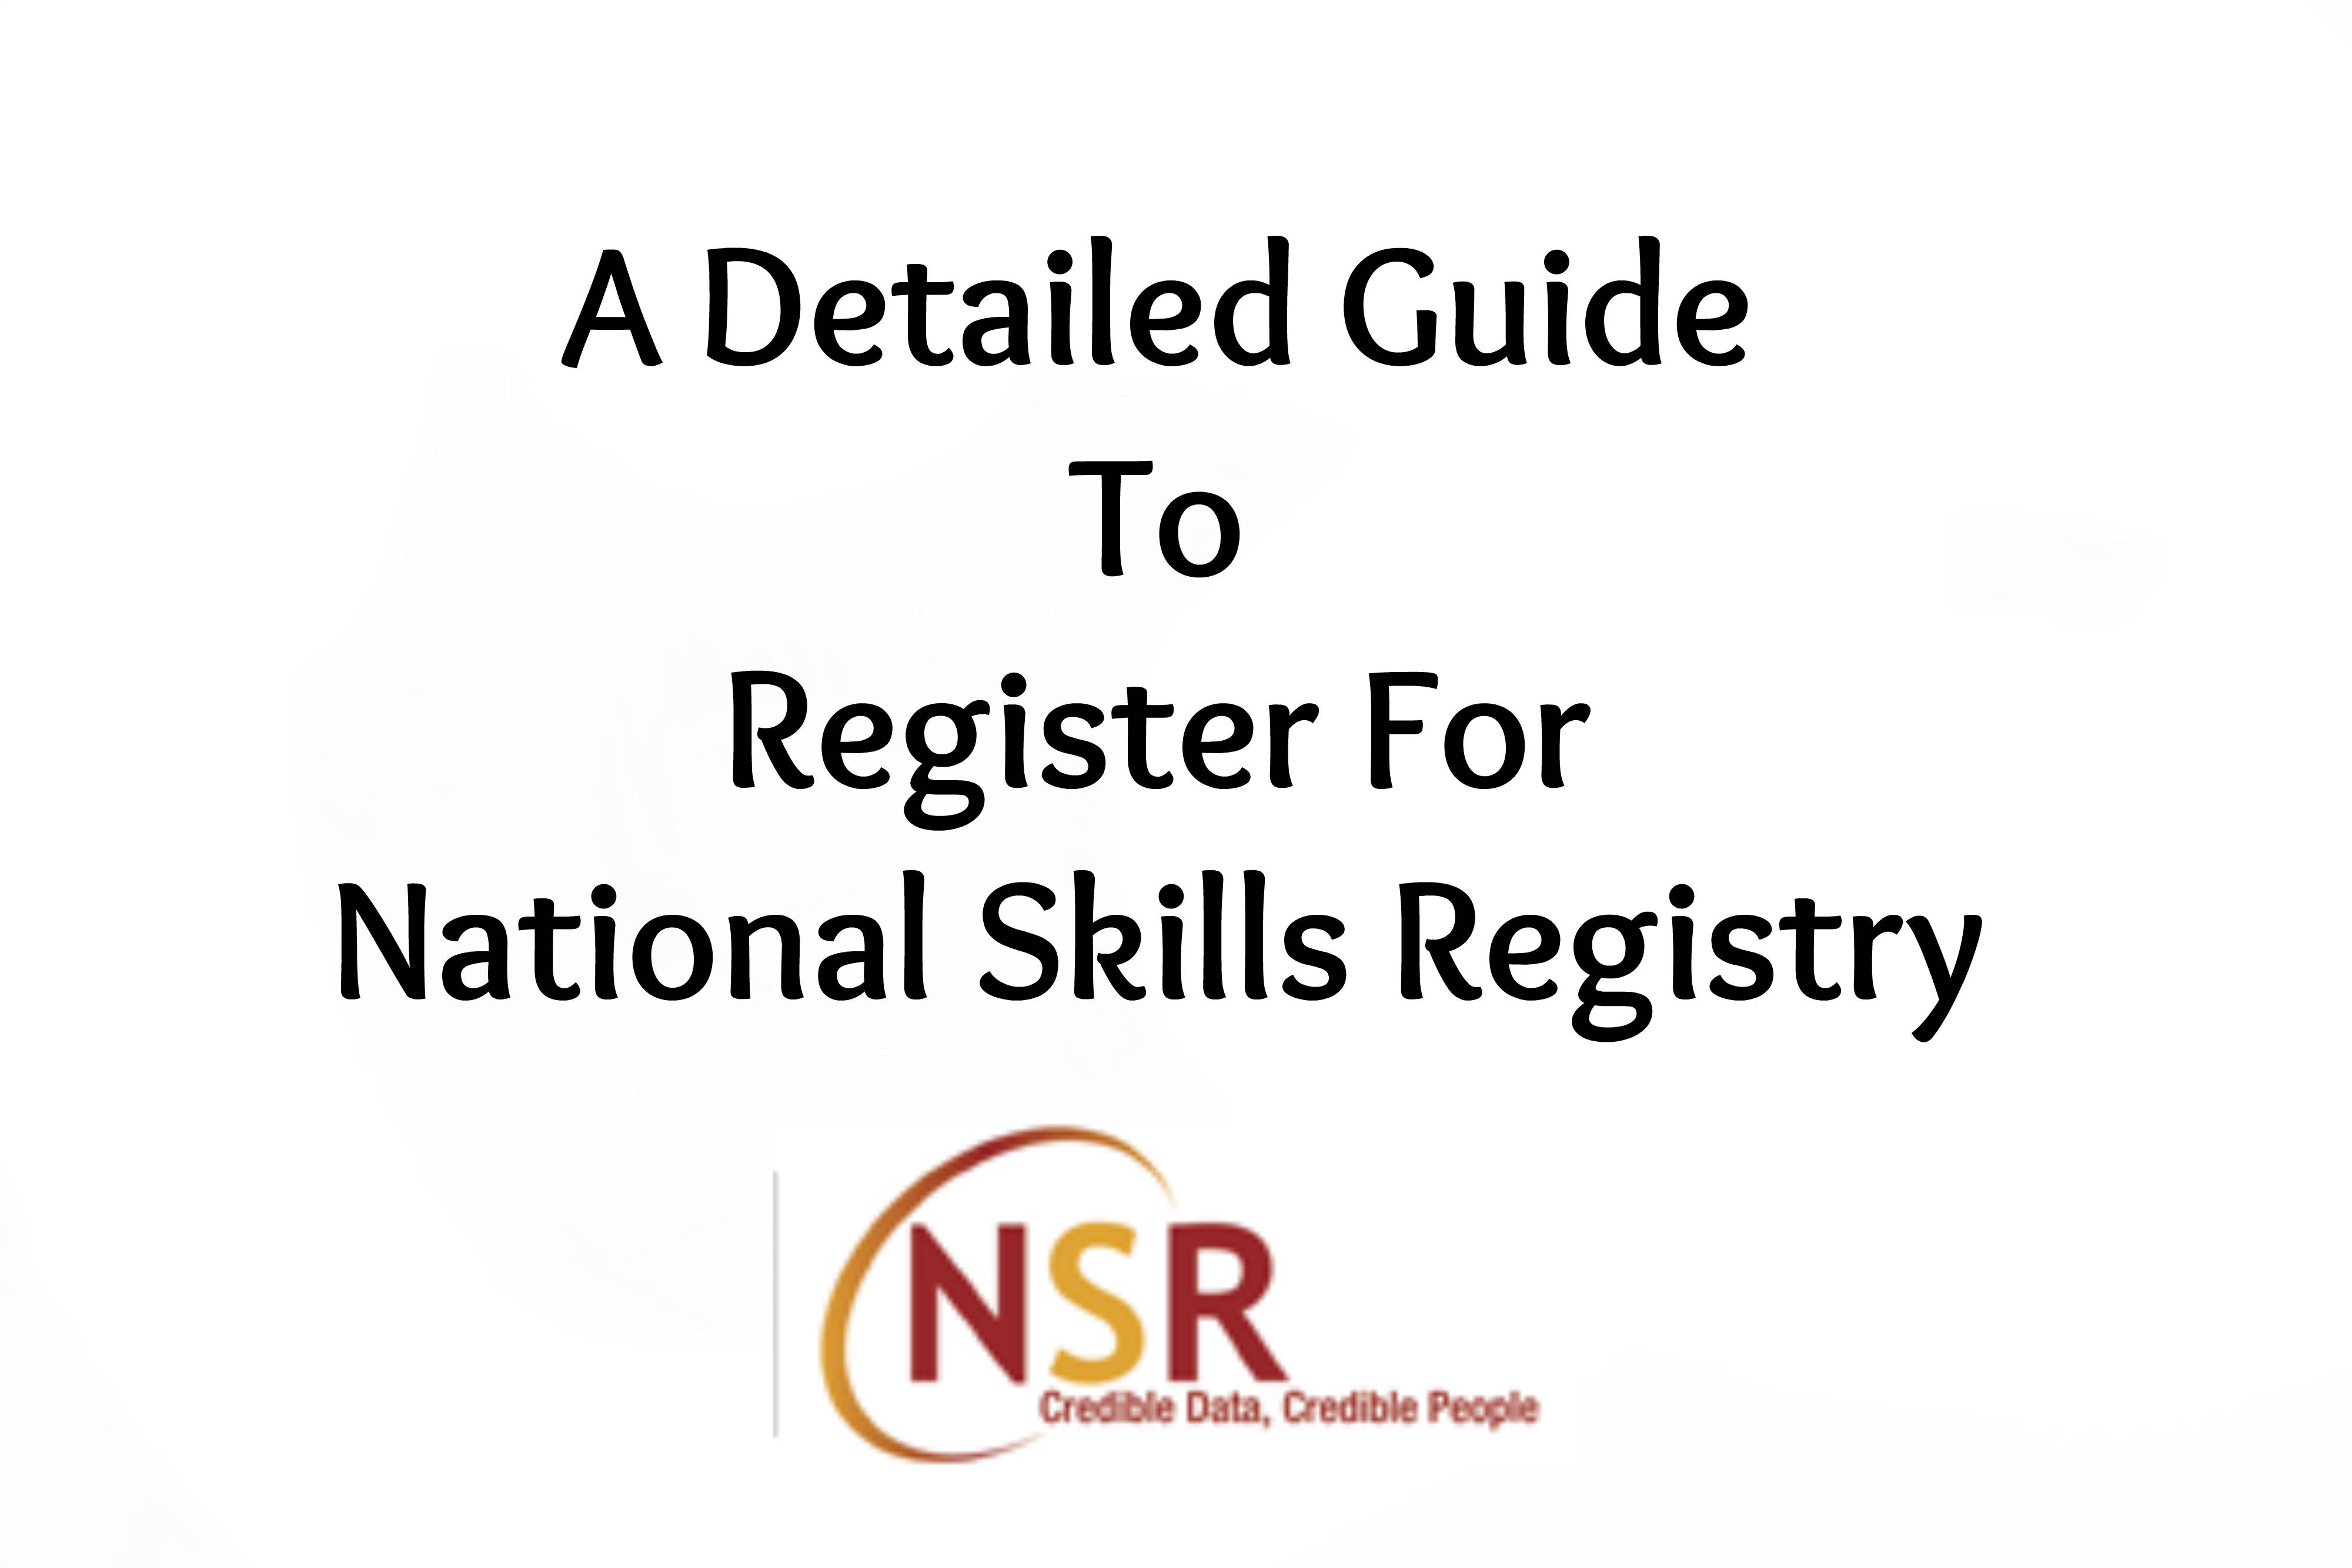 NSR - National Skills Registry